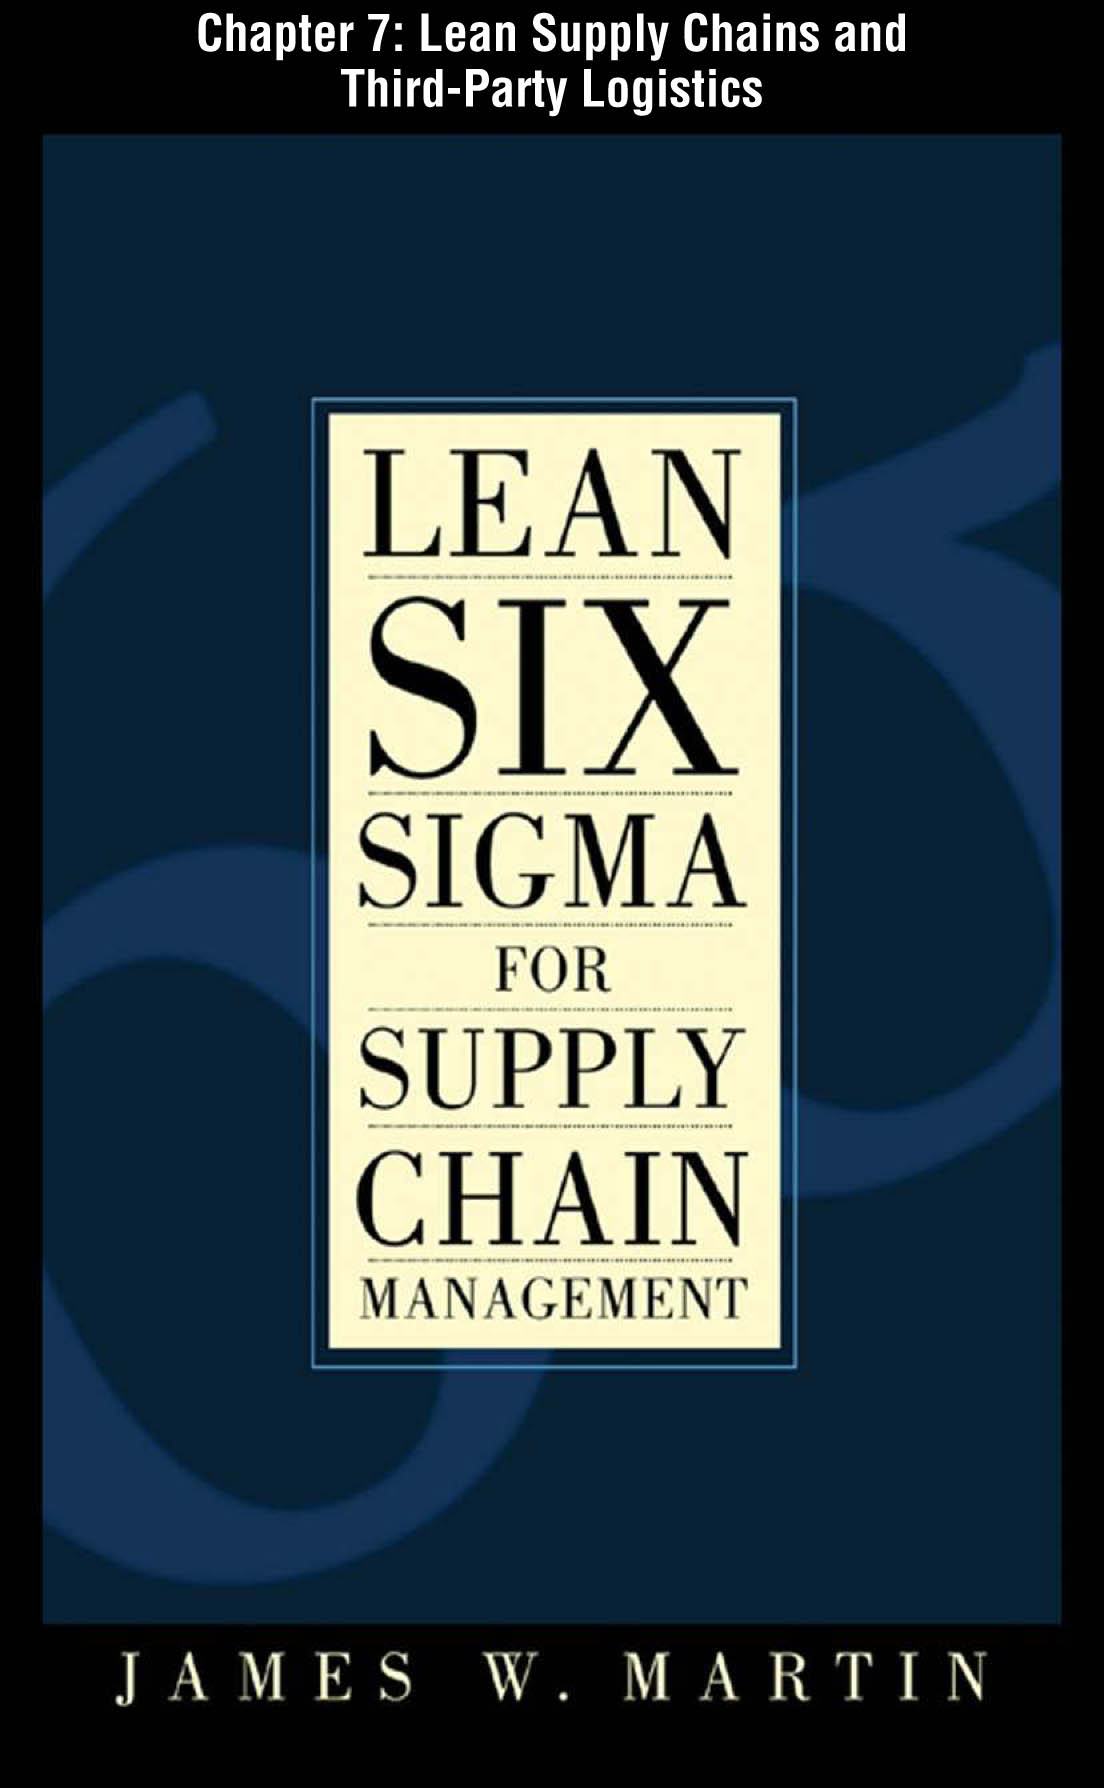 Lean Six Sigma for Supply Chain Management, Chapter 7 - Lean Supply Chains and Third-Party Logistics By: James Martin